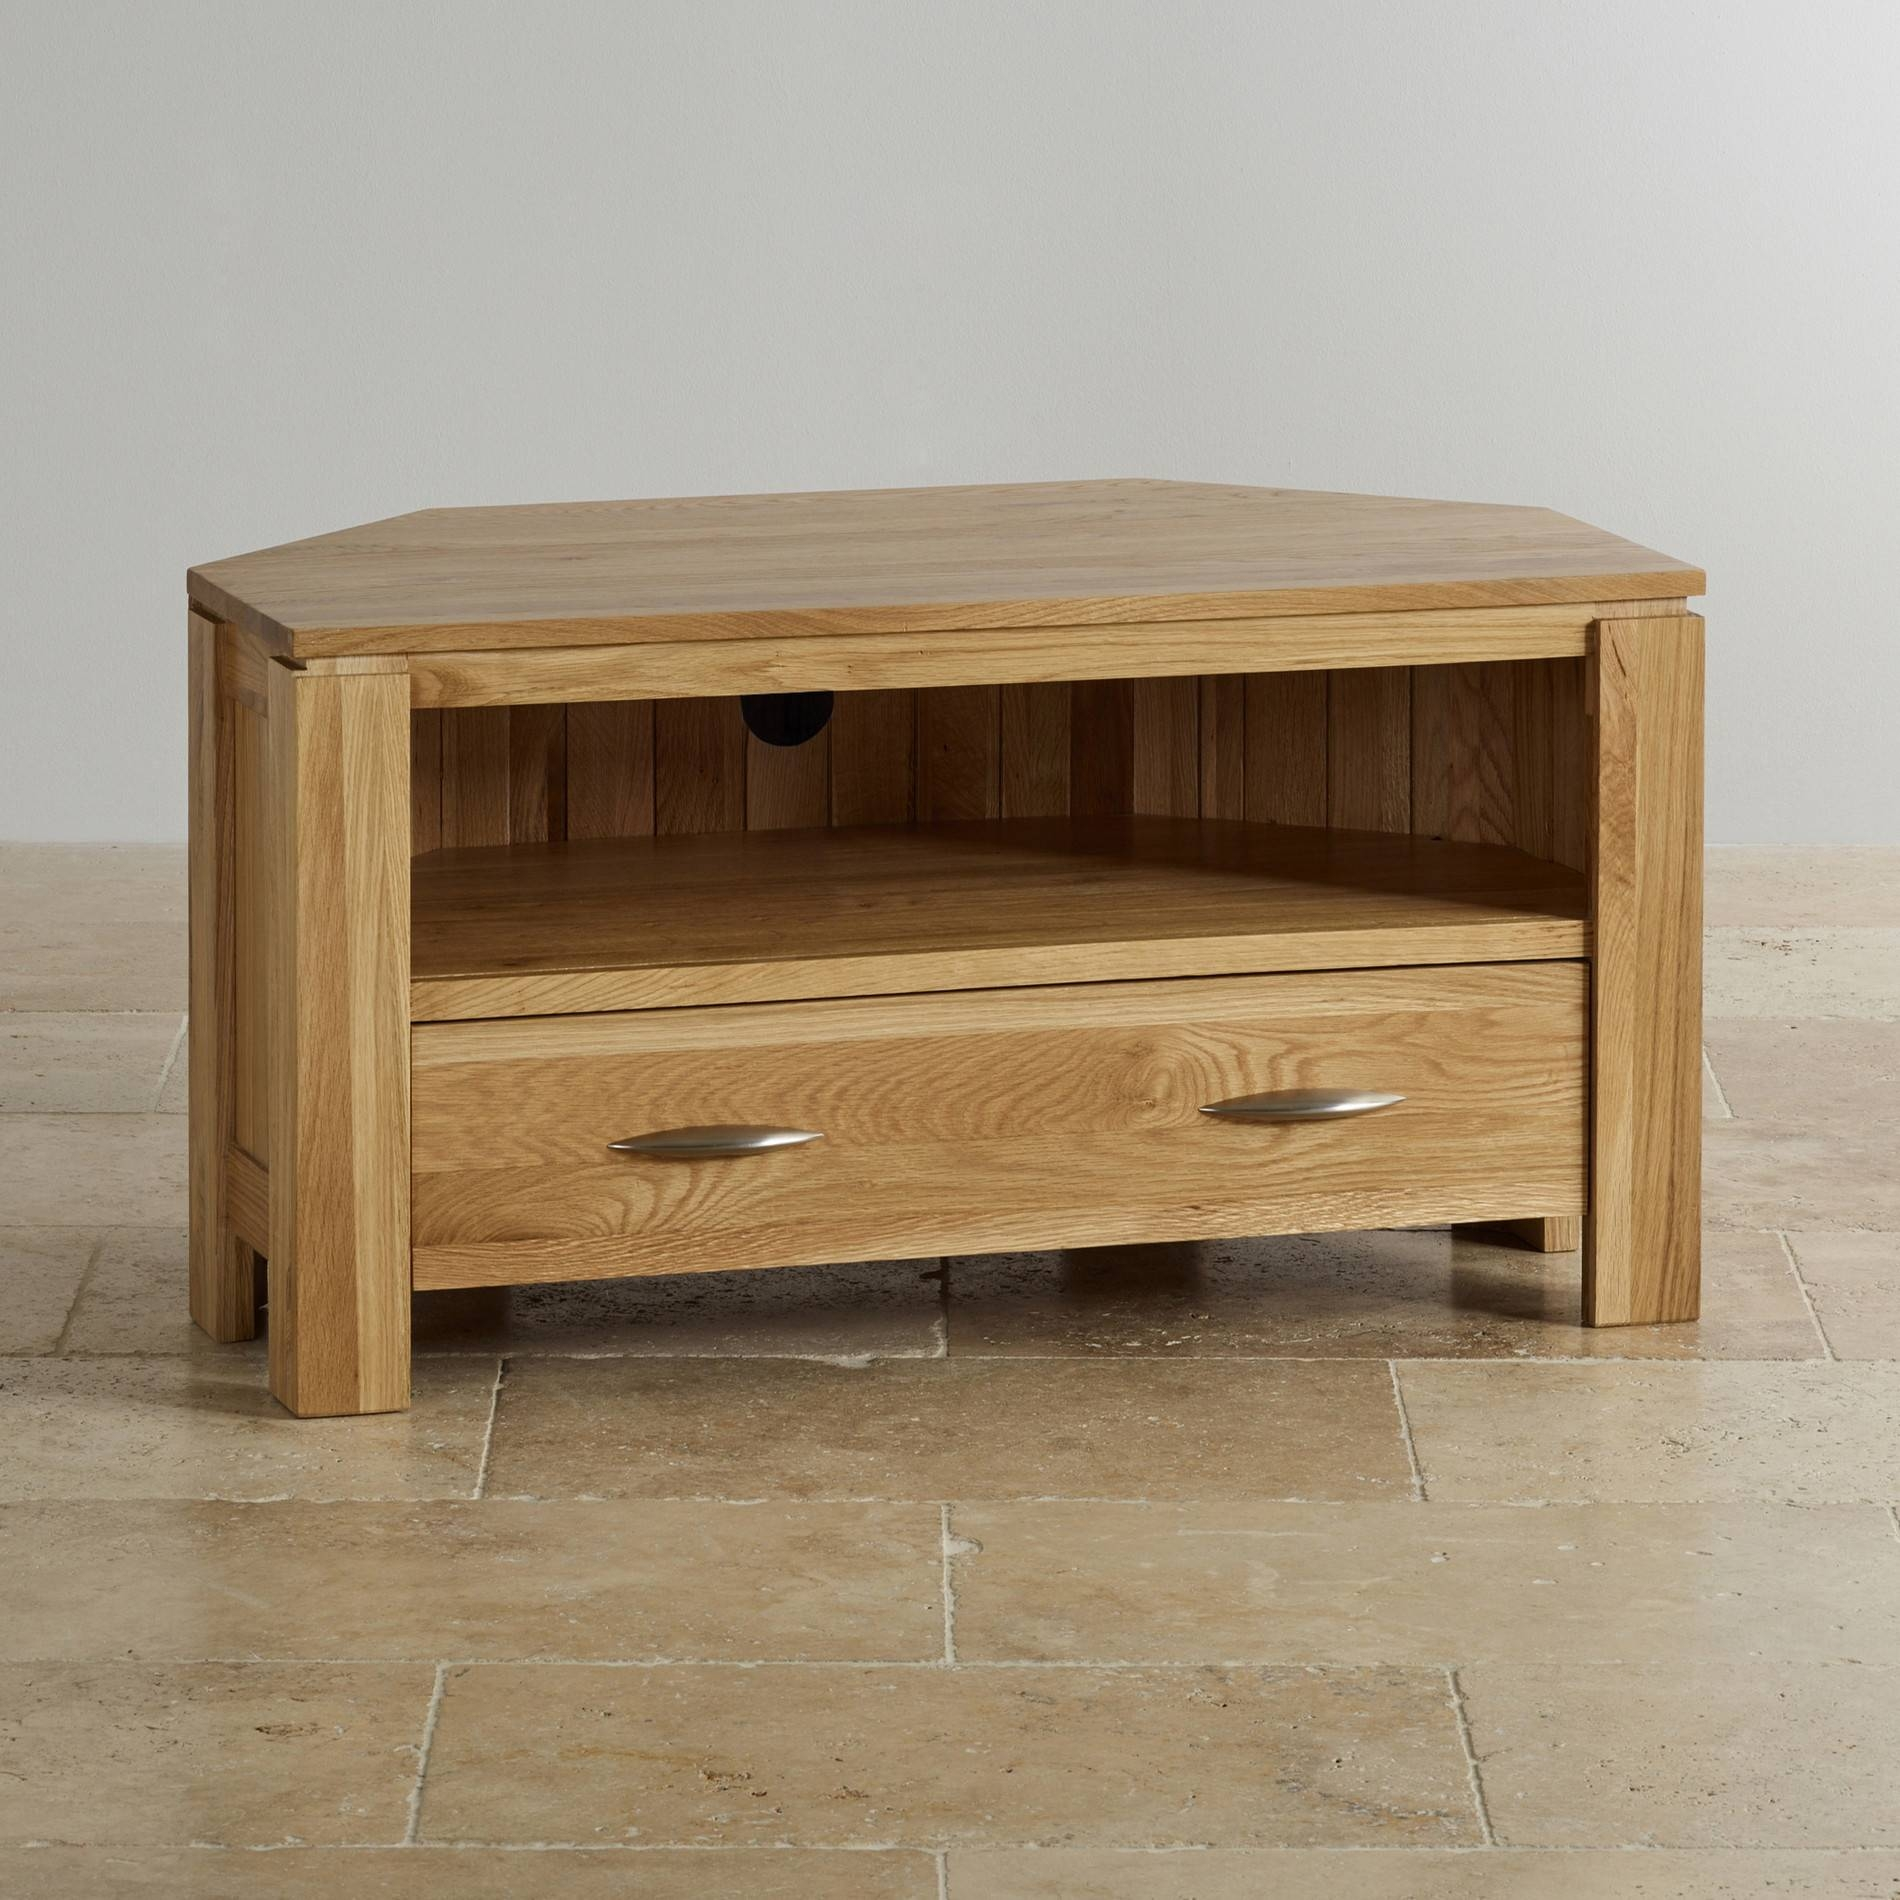 Galway Corner Tv + Dvd Cabinet In Solid Oak | Oak Furniture Land throughout Solid Wood Corner Tv Cabinets (Image 4 of 15)